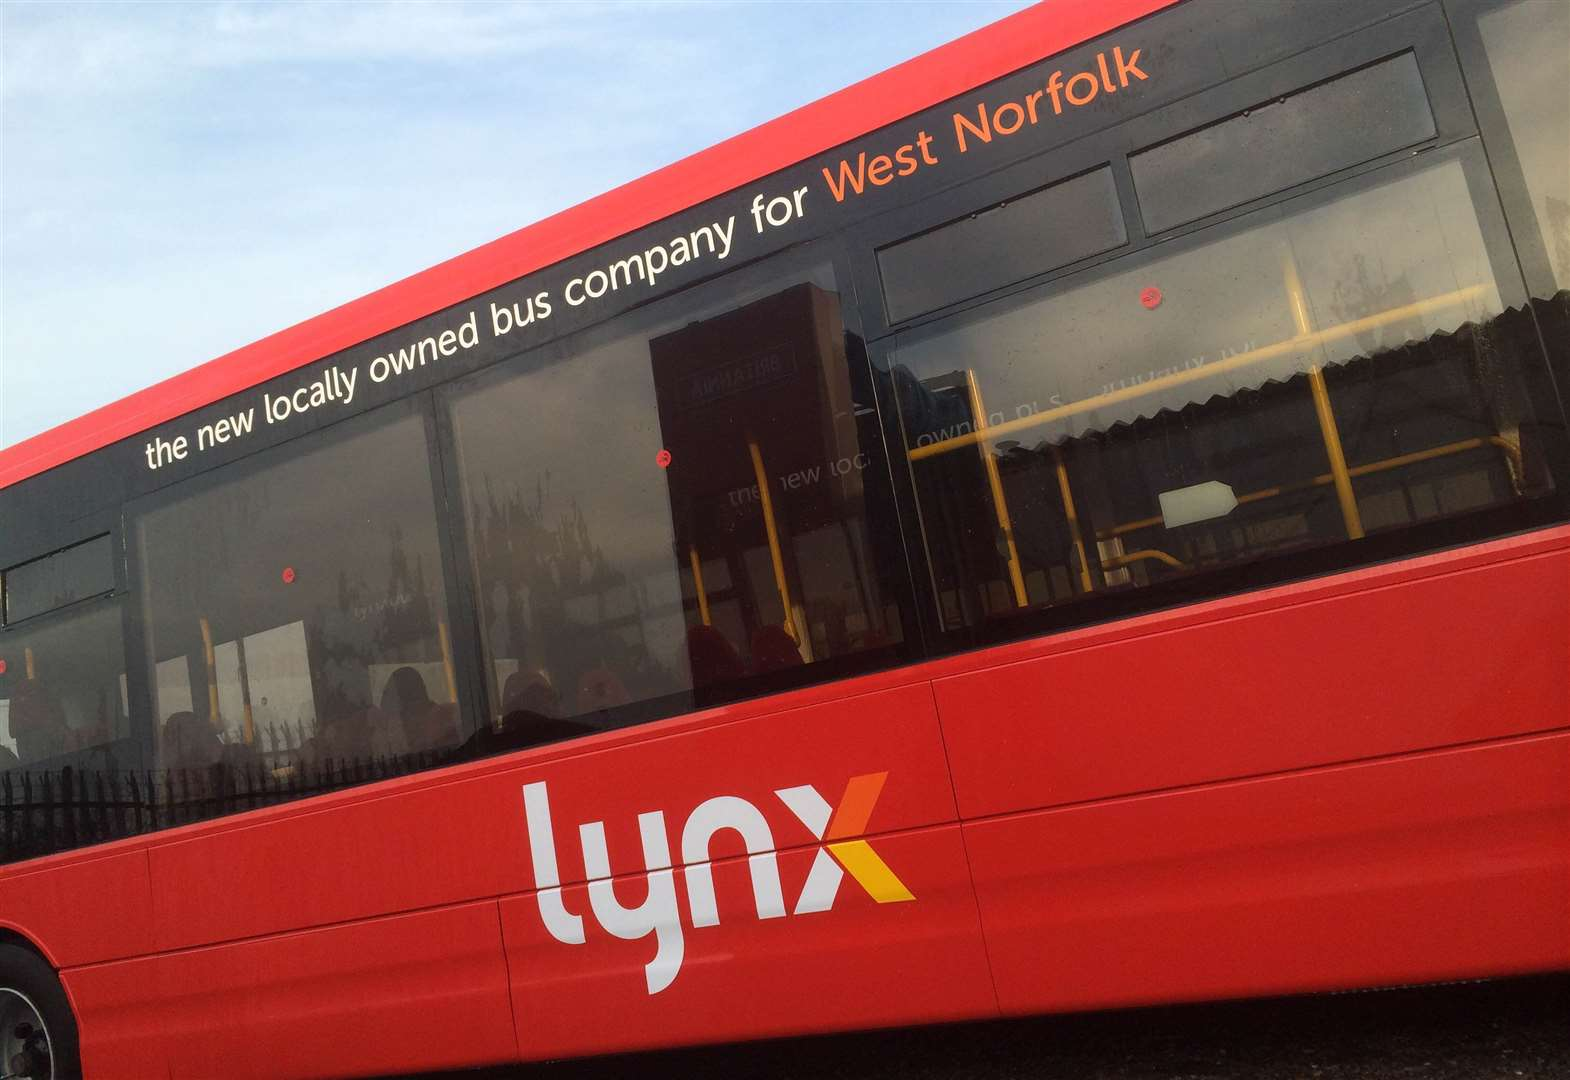 Disruption to bus service due to water work